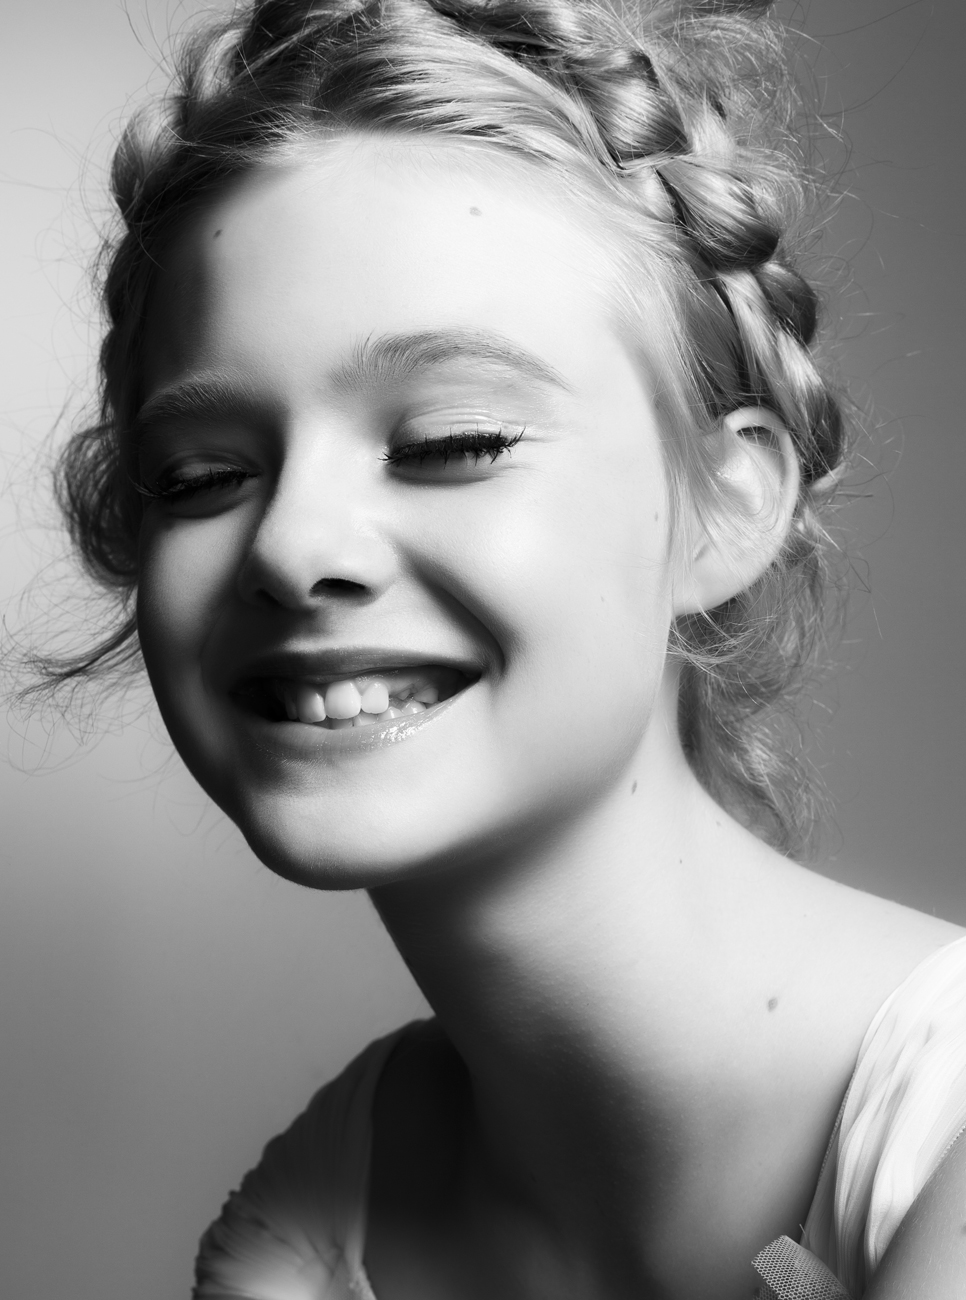 Elle Fanning Photo 31661692: 301 Moved Permanently